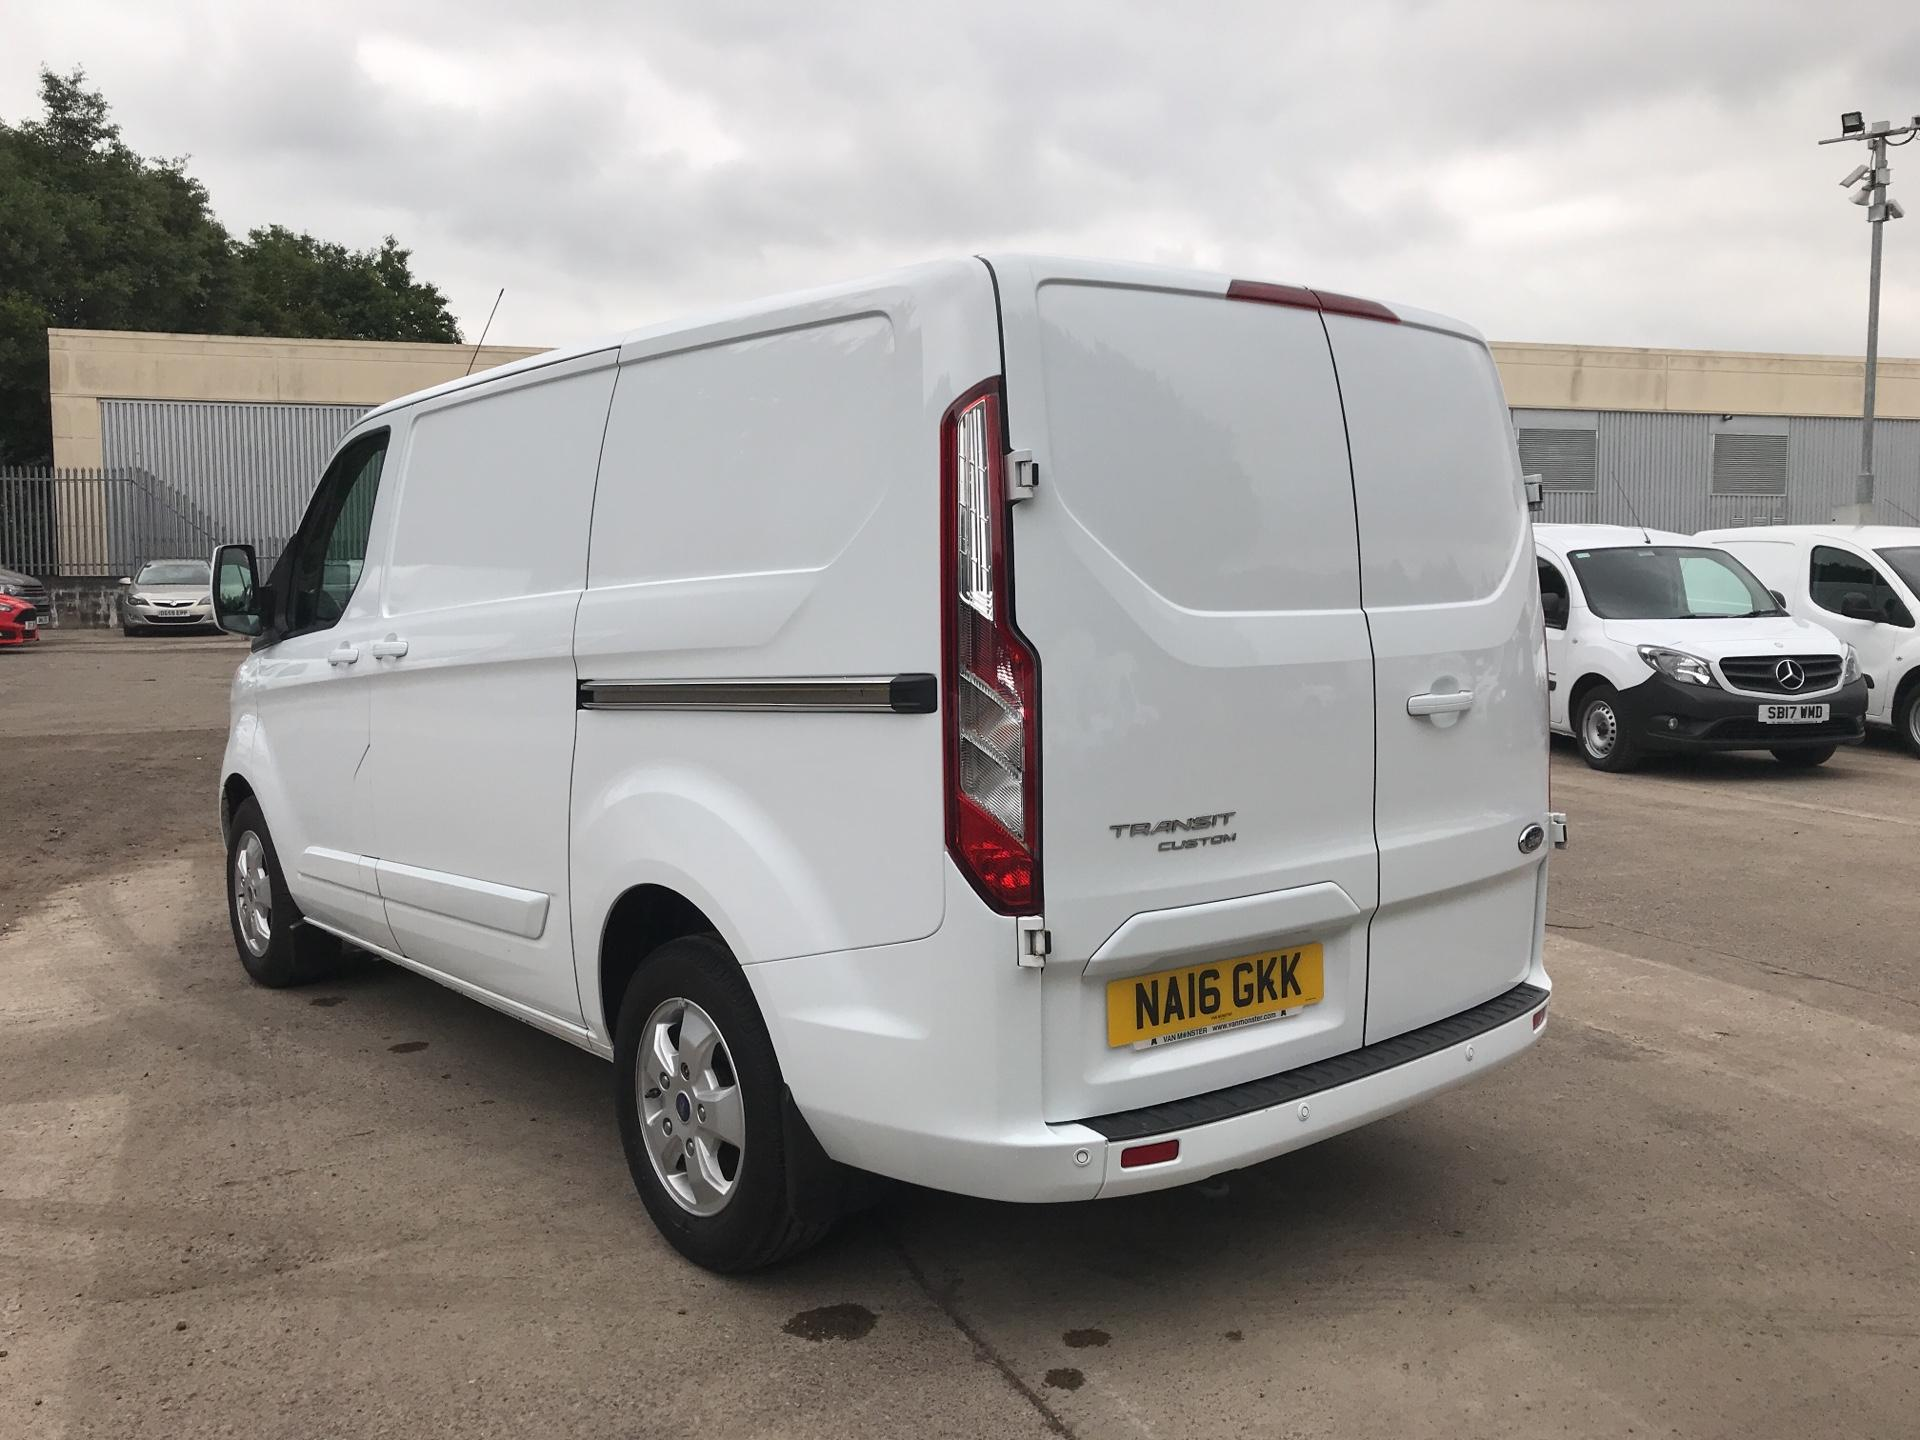 2016 Ford Transit Custom 270 L1 DIESEL FWD 2.2  TDCI 125PS LOW ROOF LIMITED VAN EURO 5 (NA16GKK) Image 5